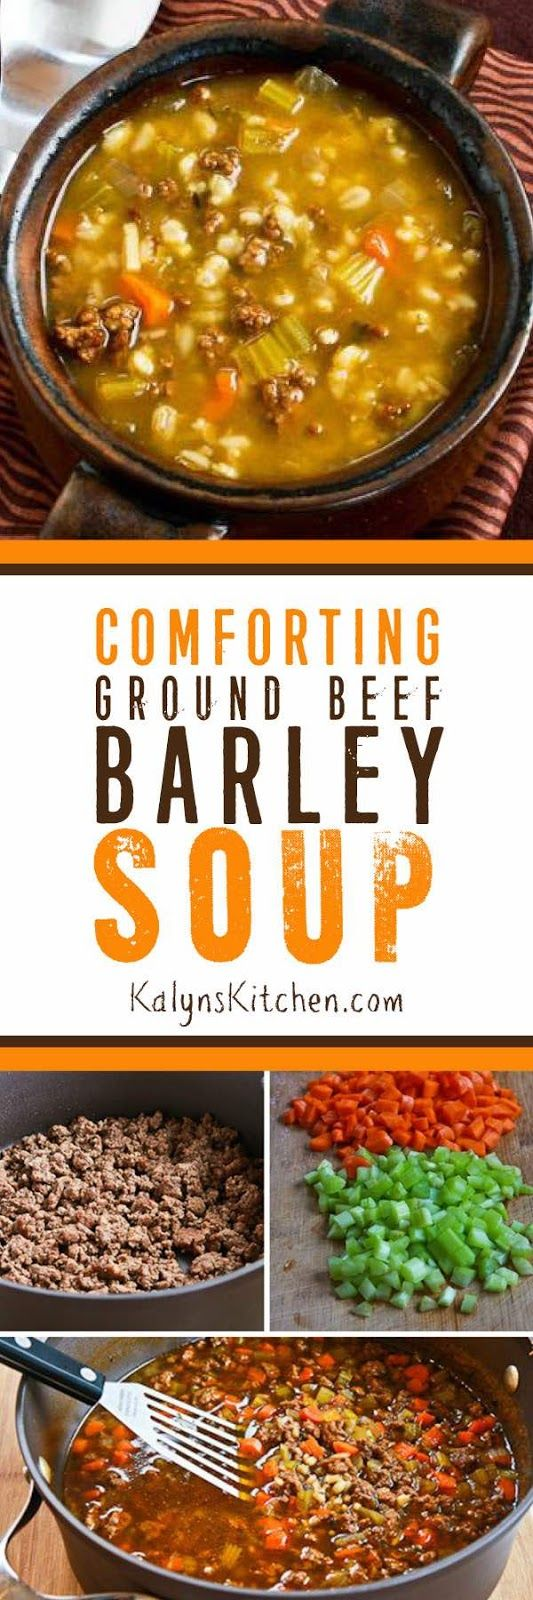 ... Beef Barley Soup on Pinterest | Cooking barley, Barley soup and Beef